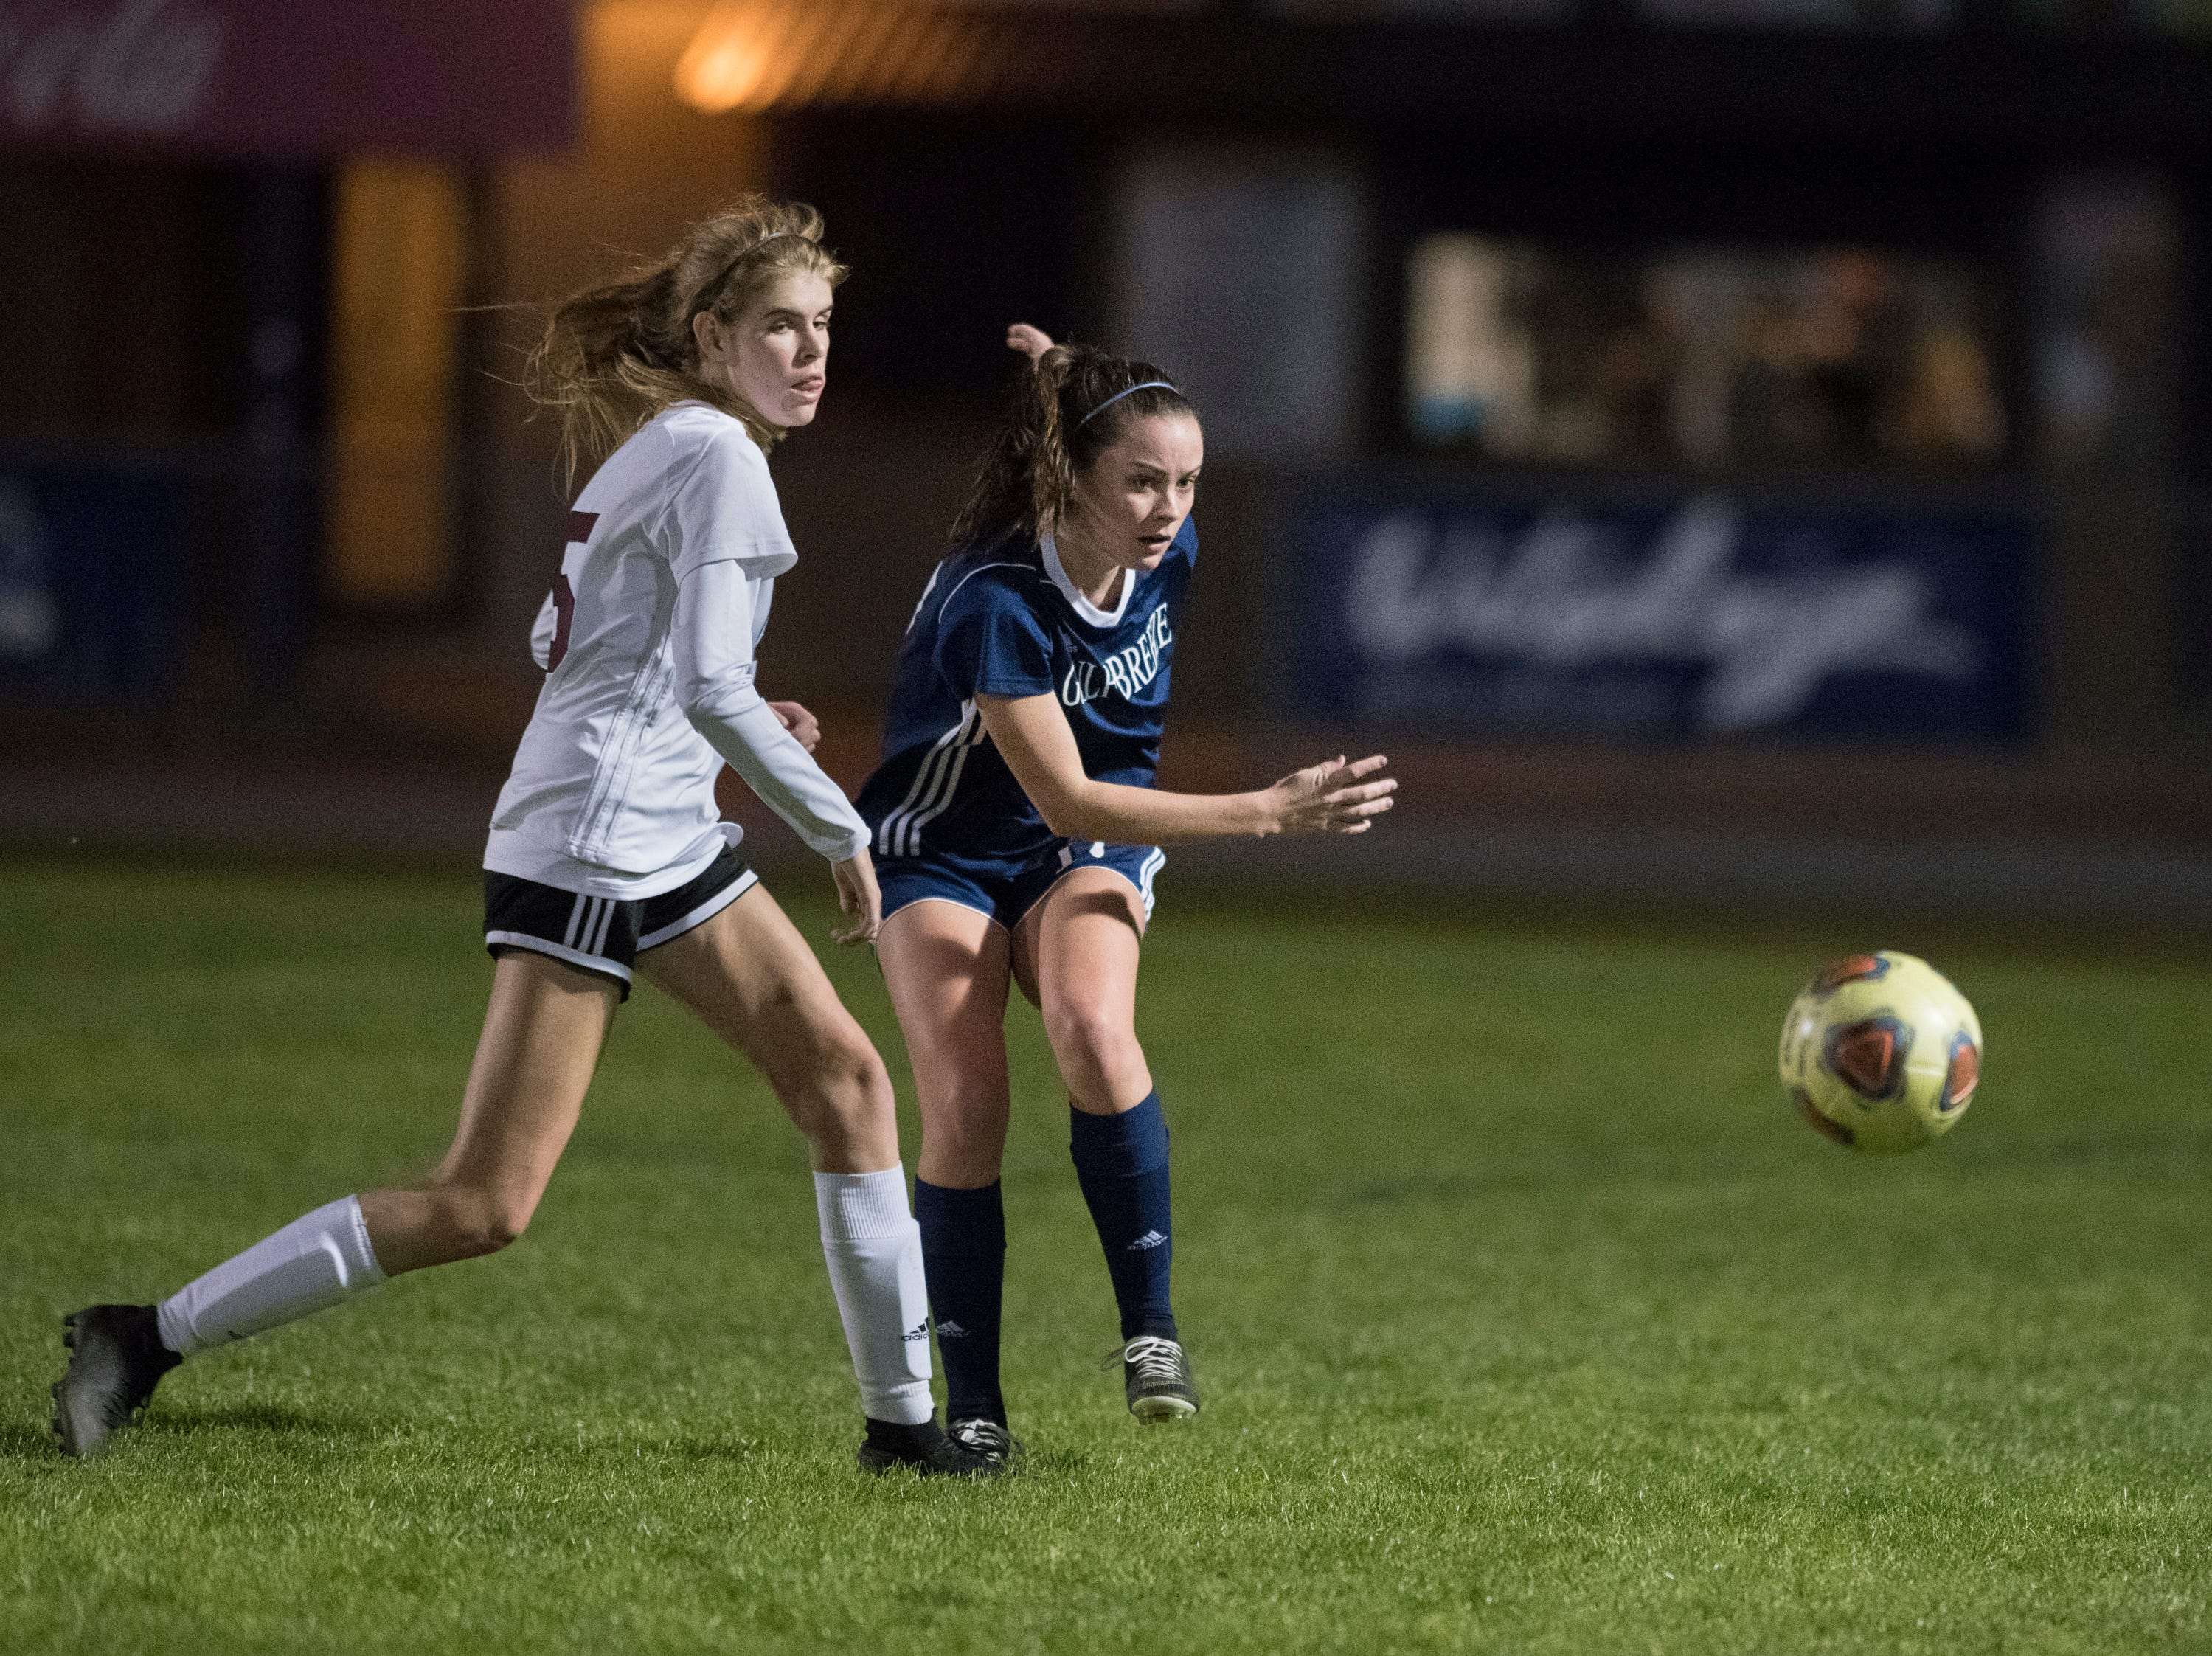 Sydney Wood (17) passes the ball during the Niceville vs Gulf Breeze soccer game at Gulf Breeze High School on Thursday, January 10, 2019.